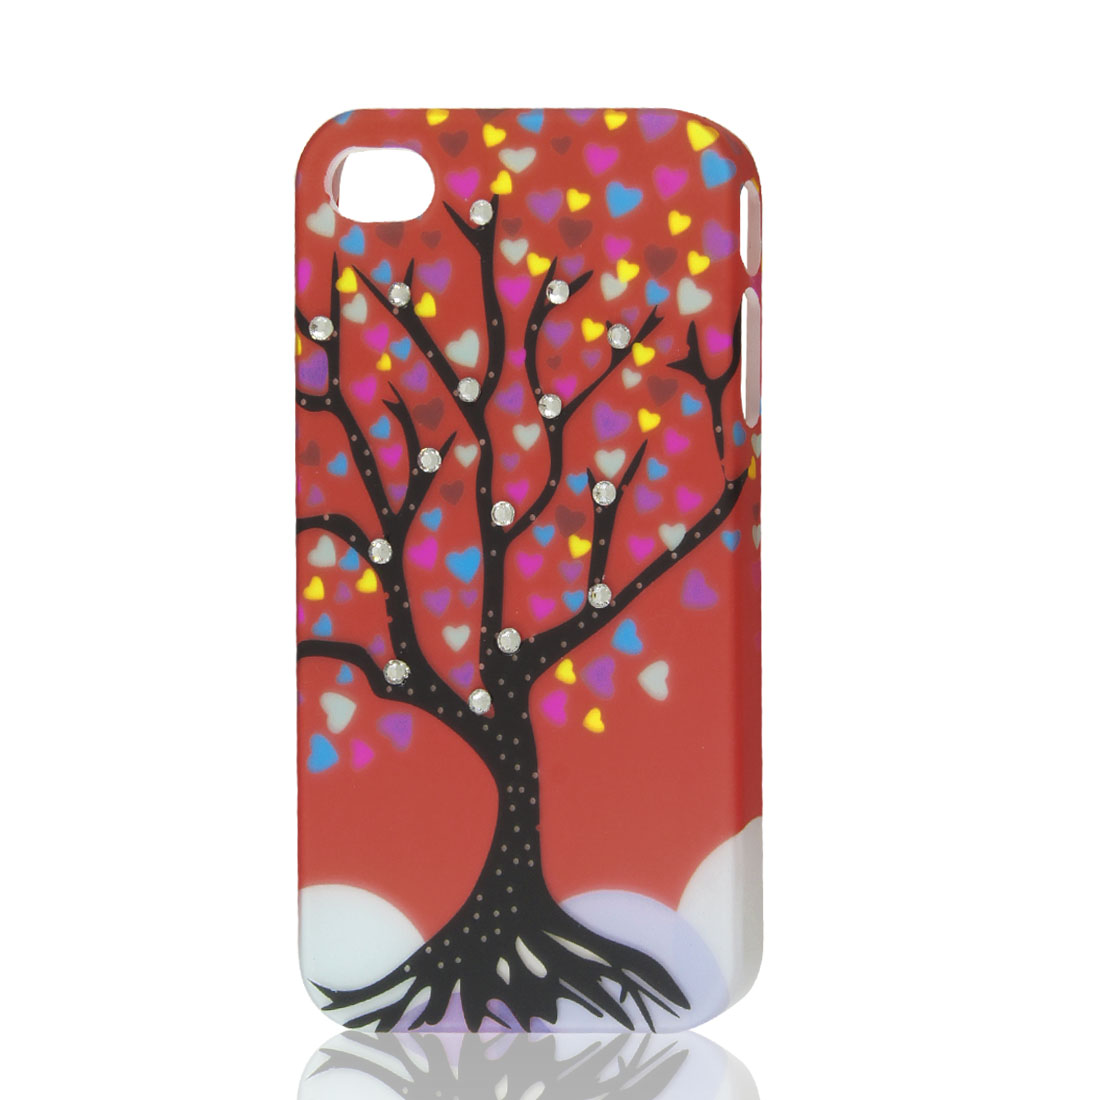 Rhinestone Tree Heart Design Orange Red Hard Back Case Cover for iPhone 4 4G